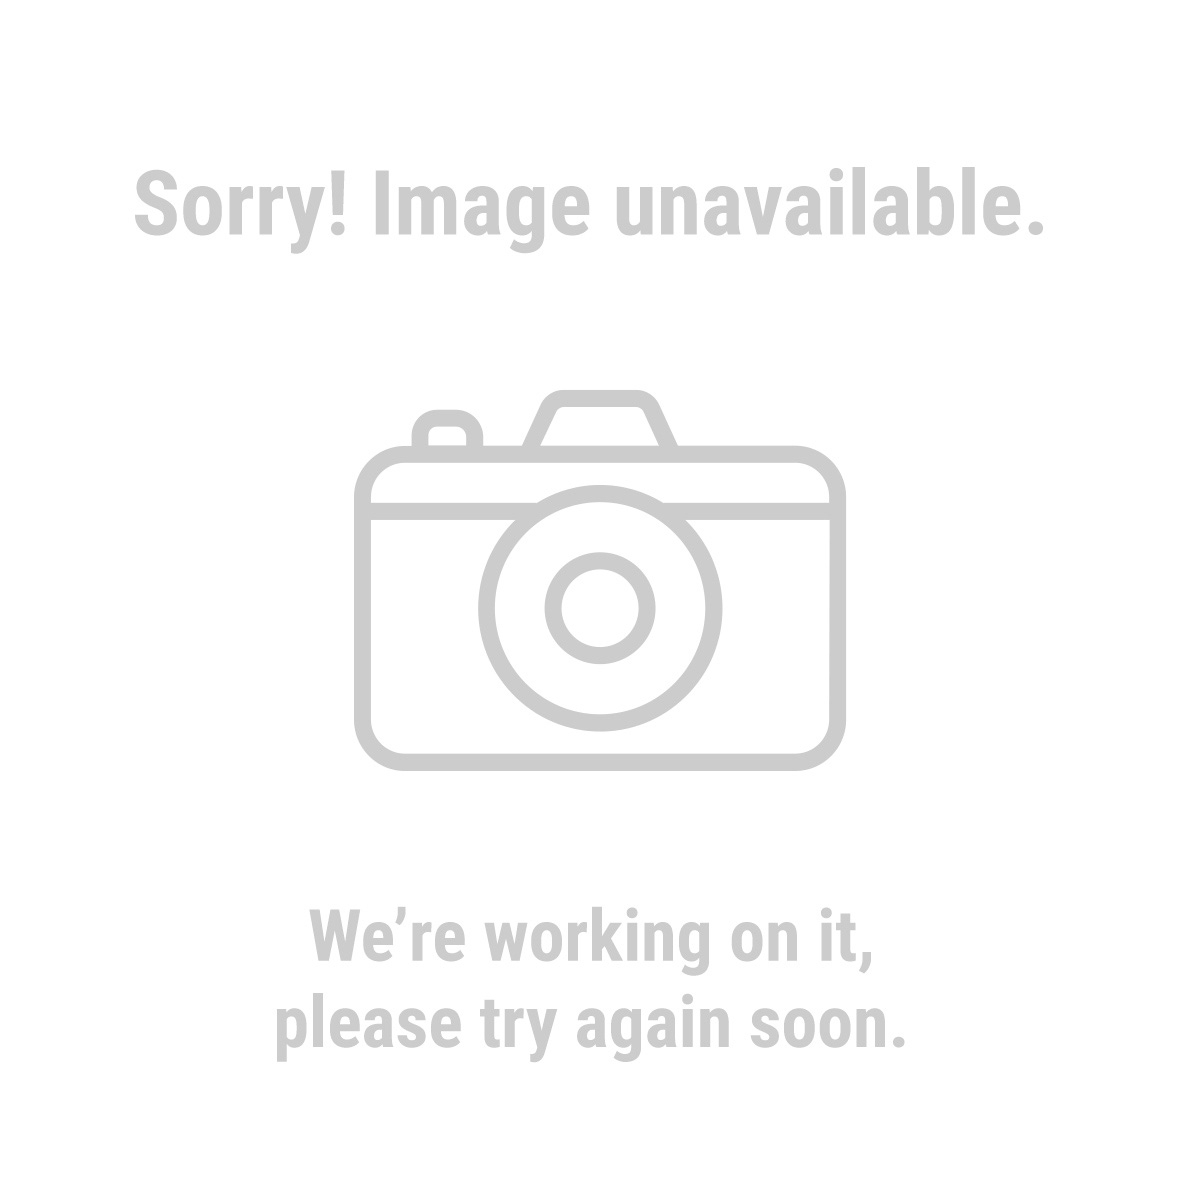 Warrior 61829 3-1/2 in. Diamond Grit Half-Moon Multi-Tool Blade for Masonry